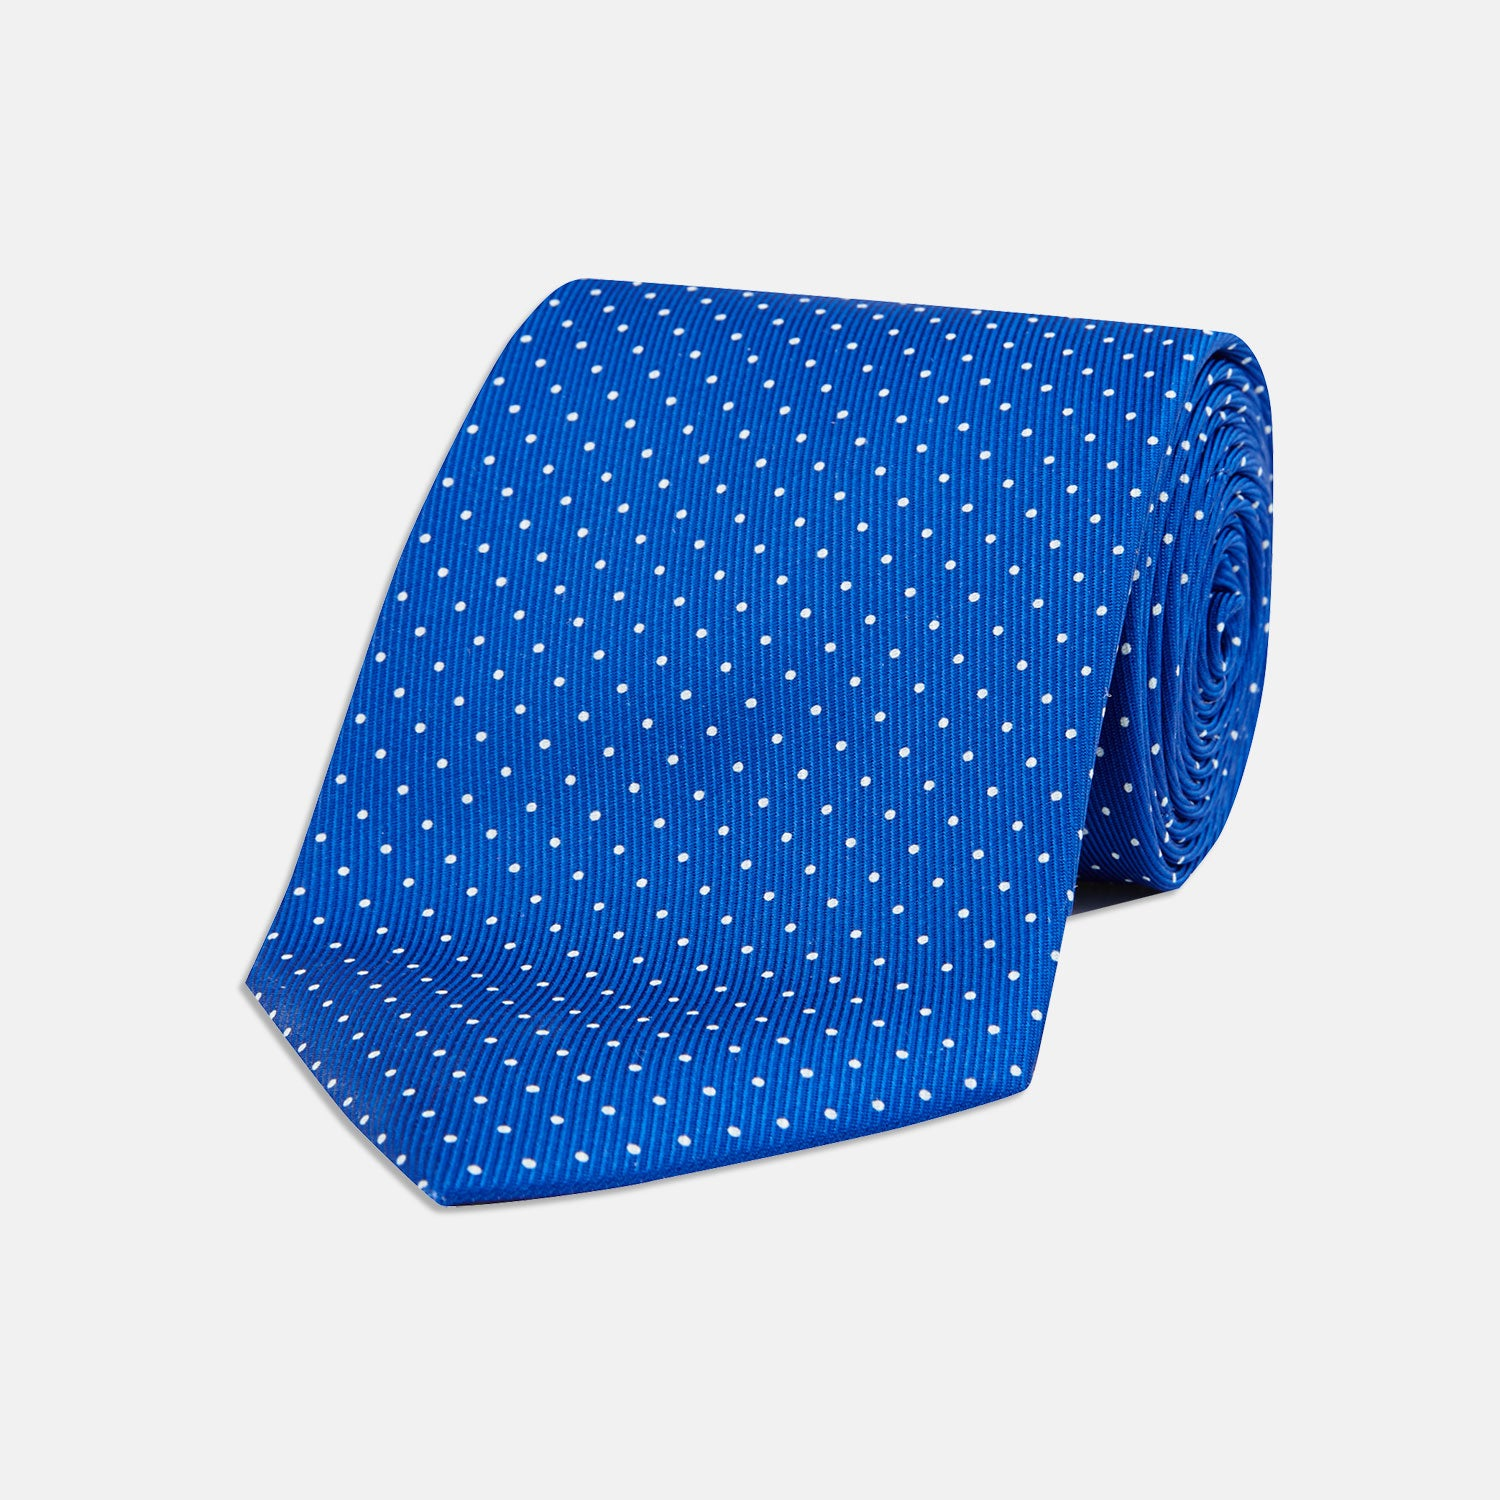 Royal Blue and White Small Spot Printed Silk Tie